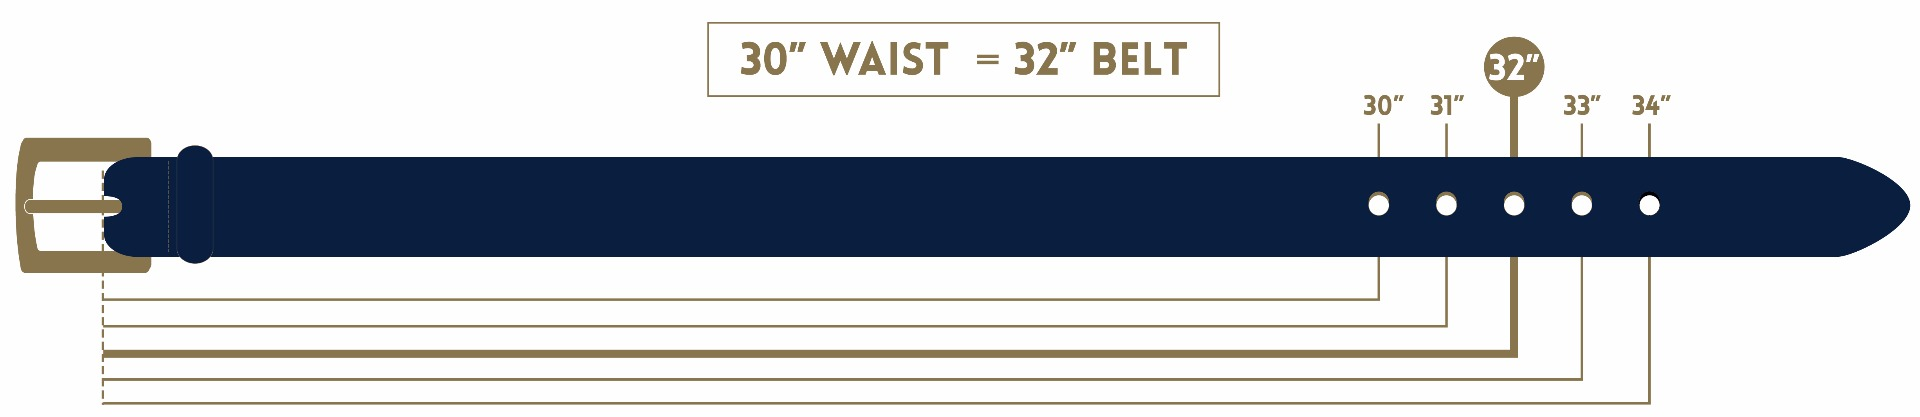 Men's and Ladies Belt Size Guide | The British Belt Company